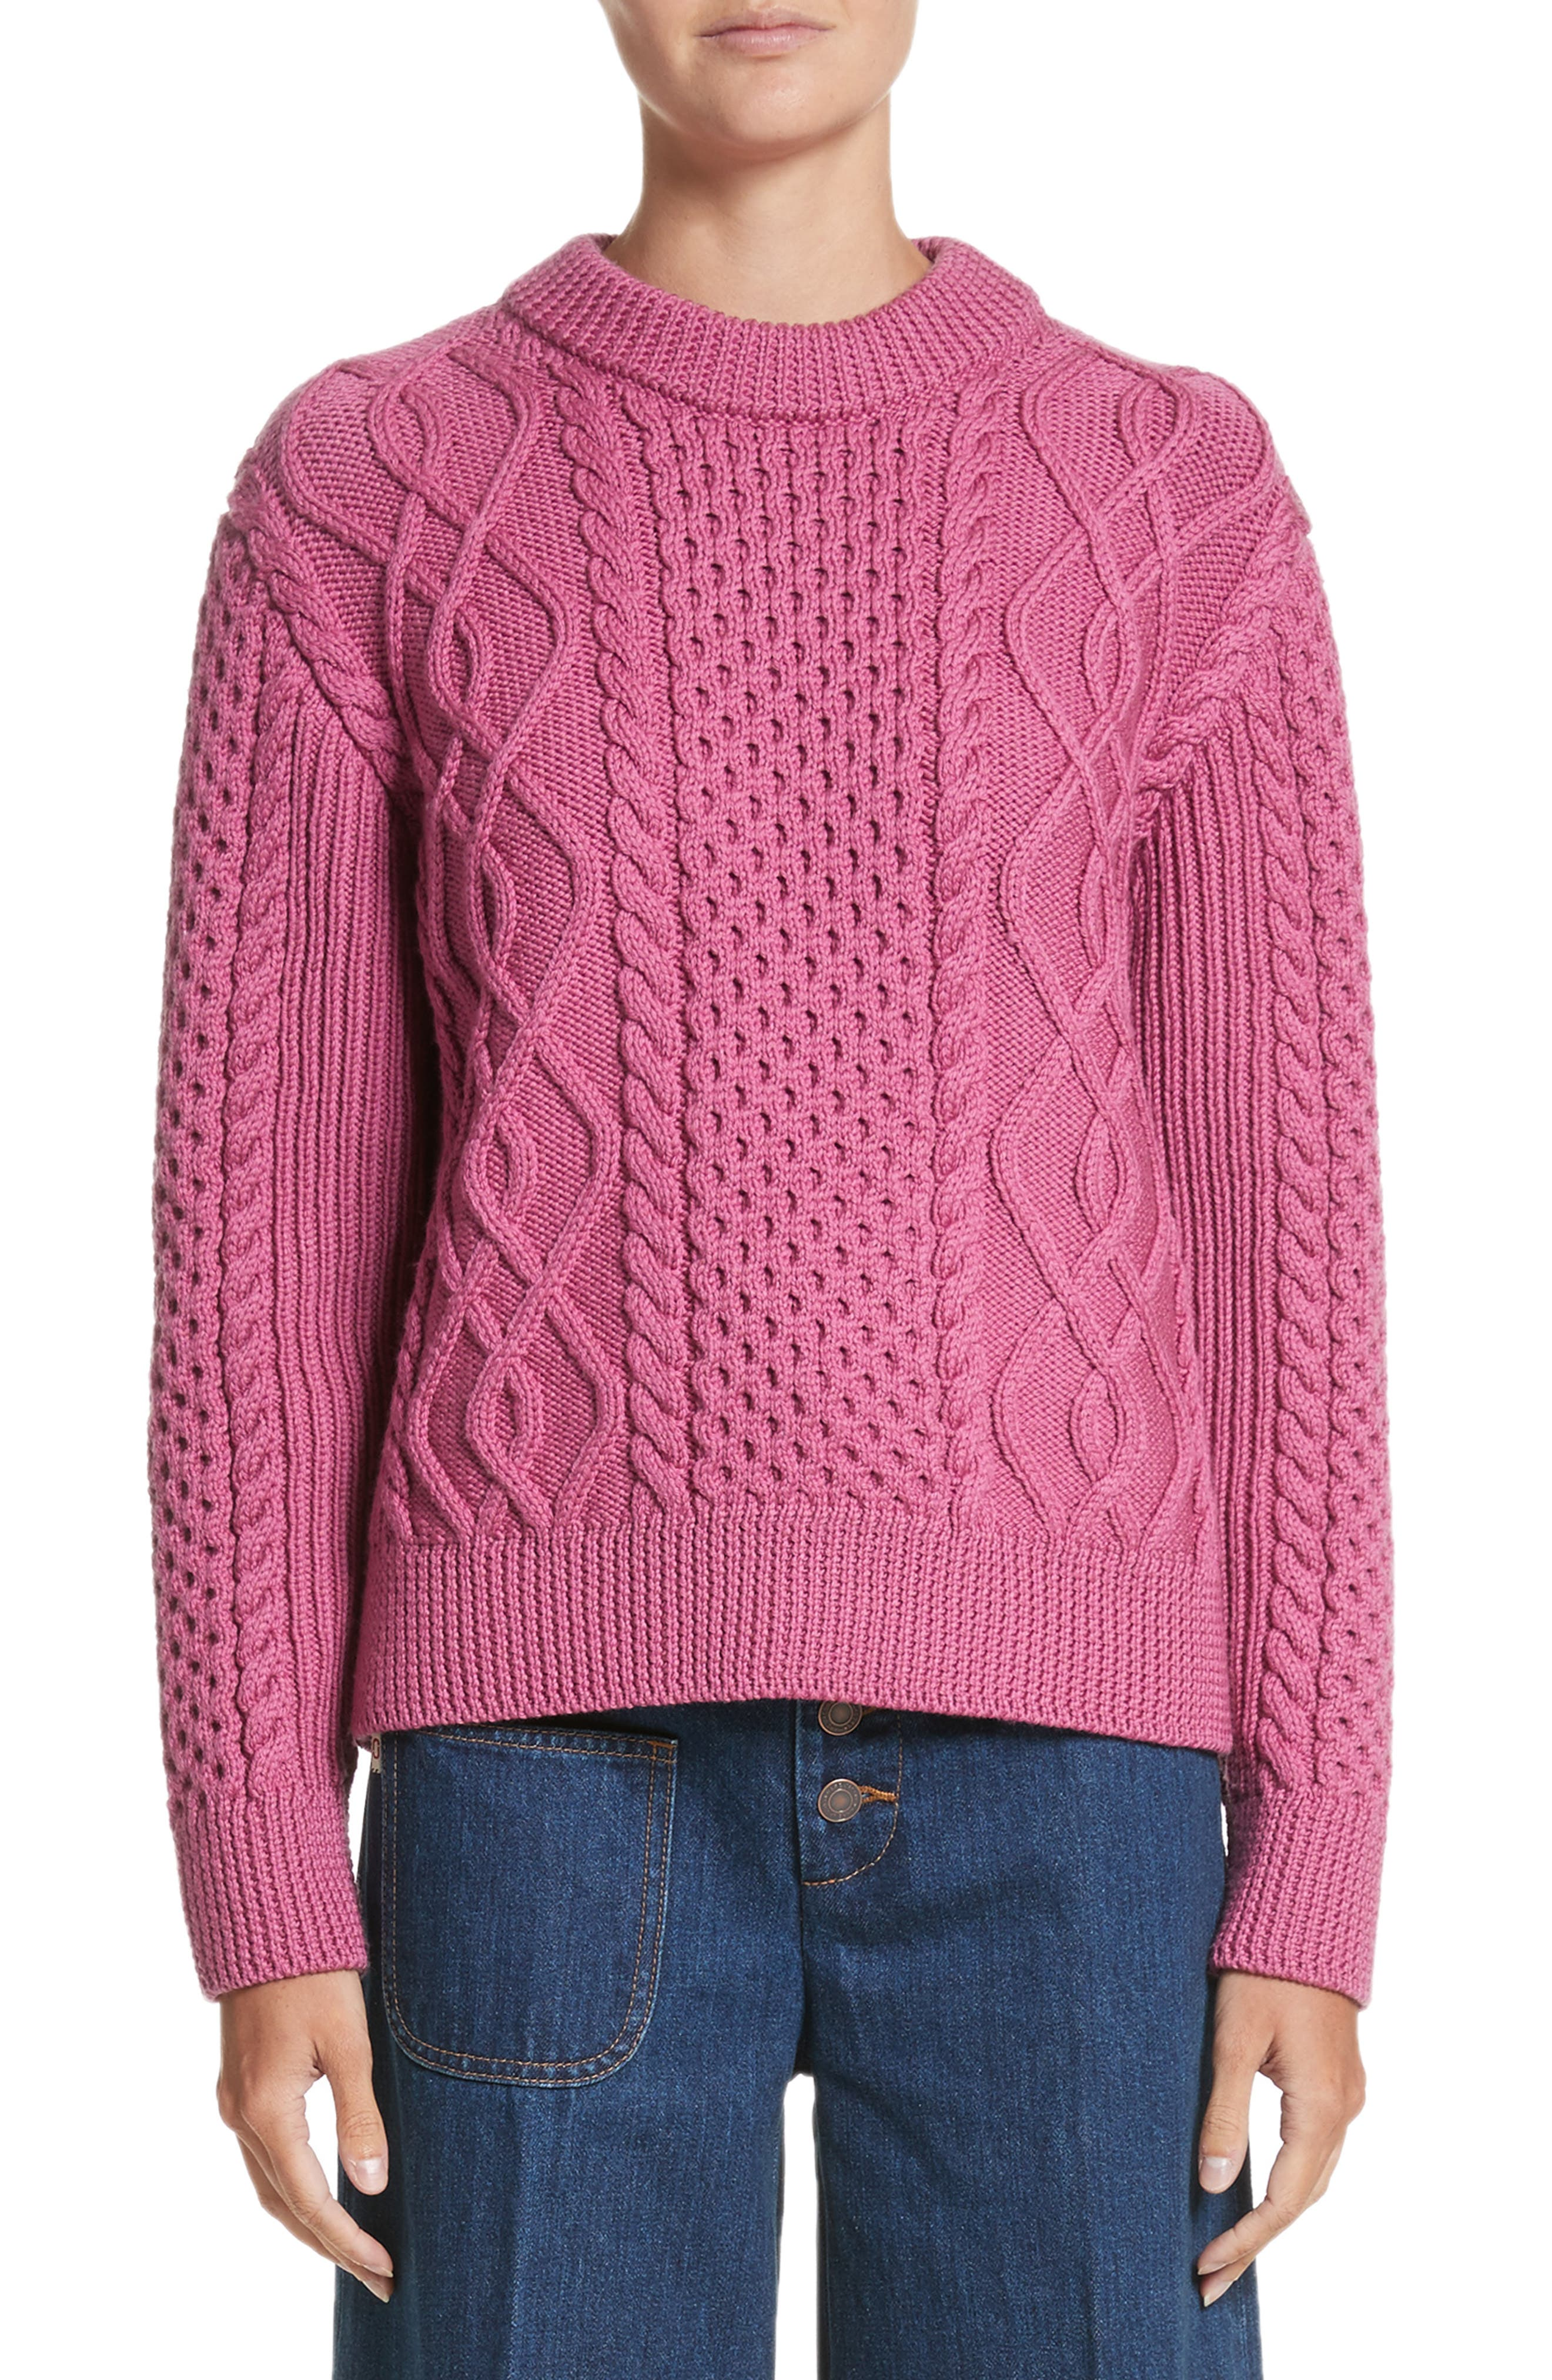 Main Image - MARC JACOBS Merino Wool Cable Knit Sweater